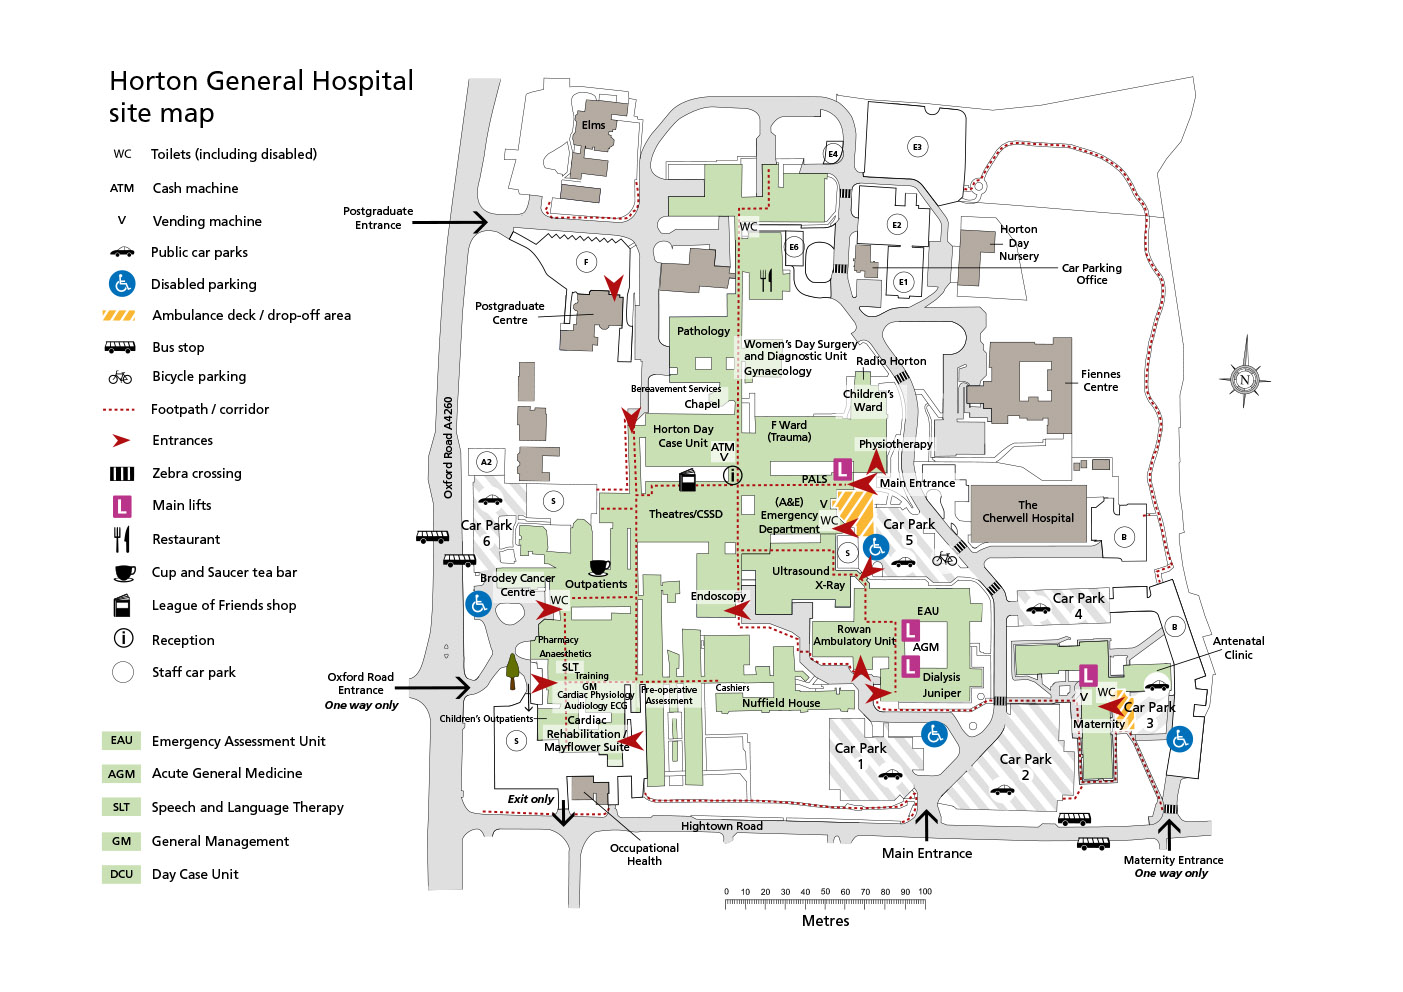 House md hospital layout